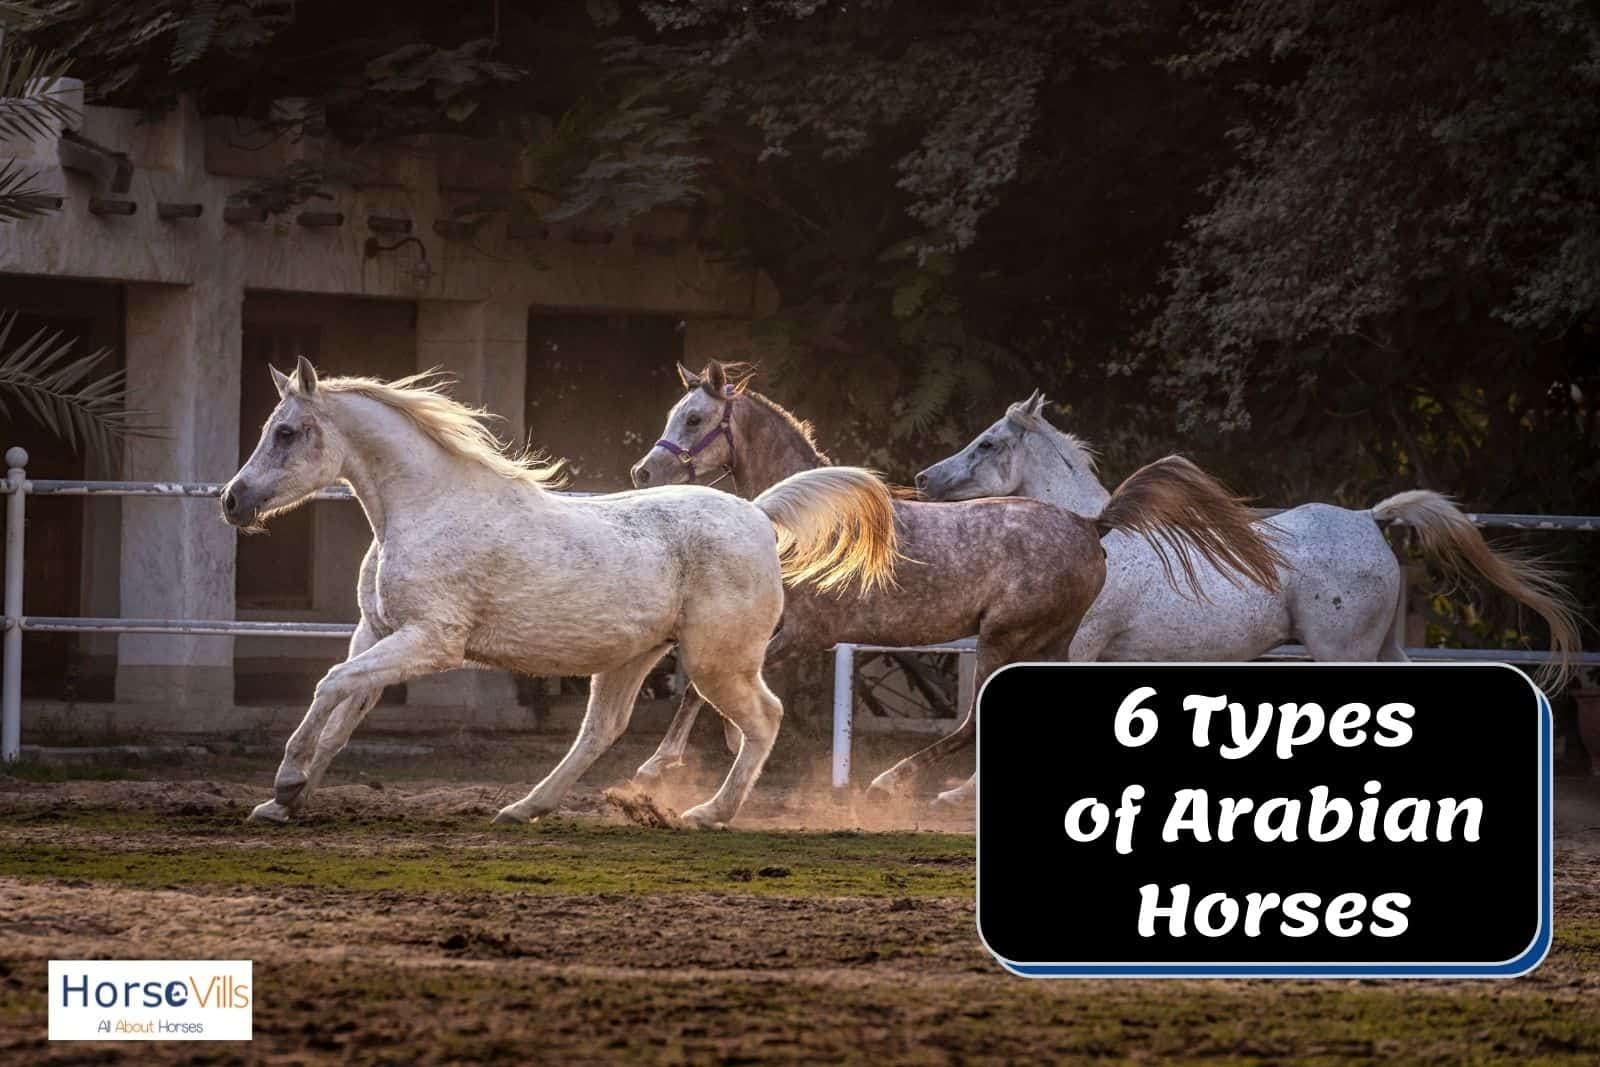 different types of Arabian horses running together